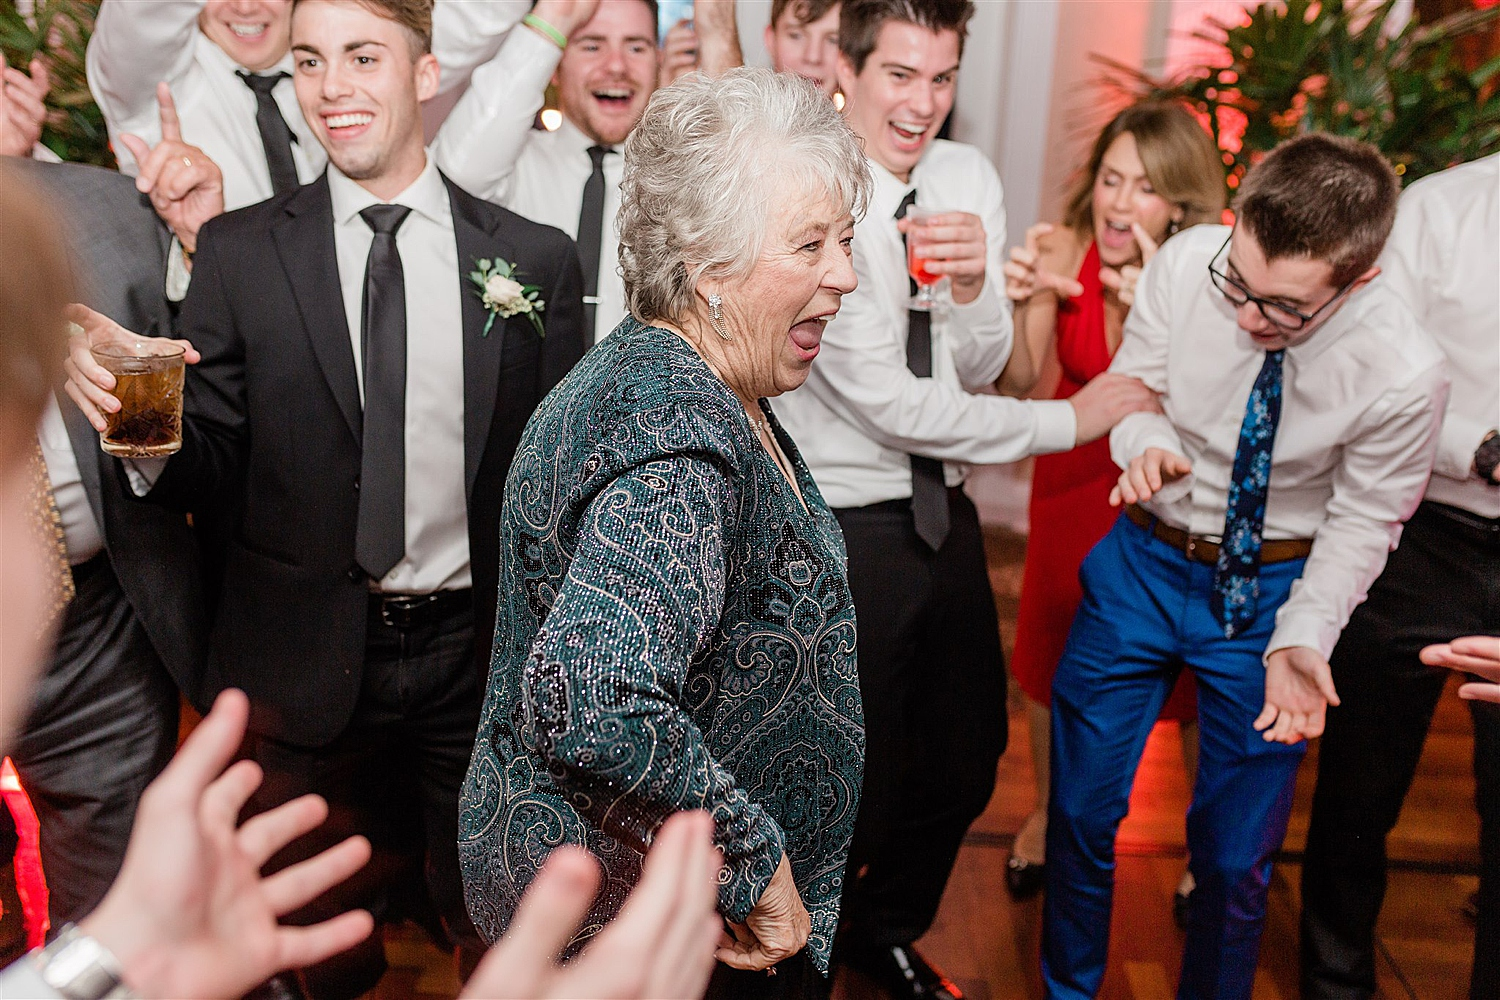 Grandma joins the wedding party on the dance floor